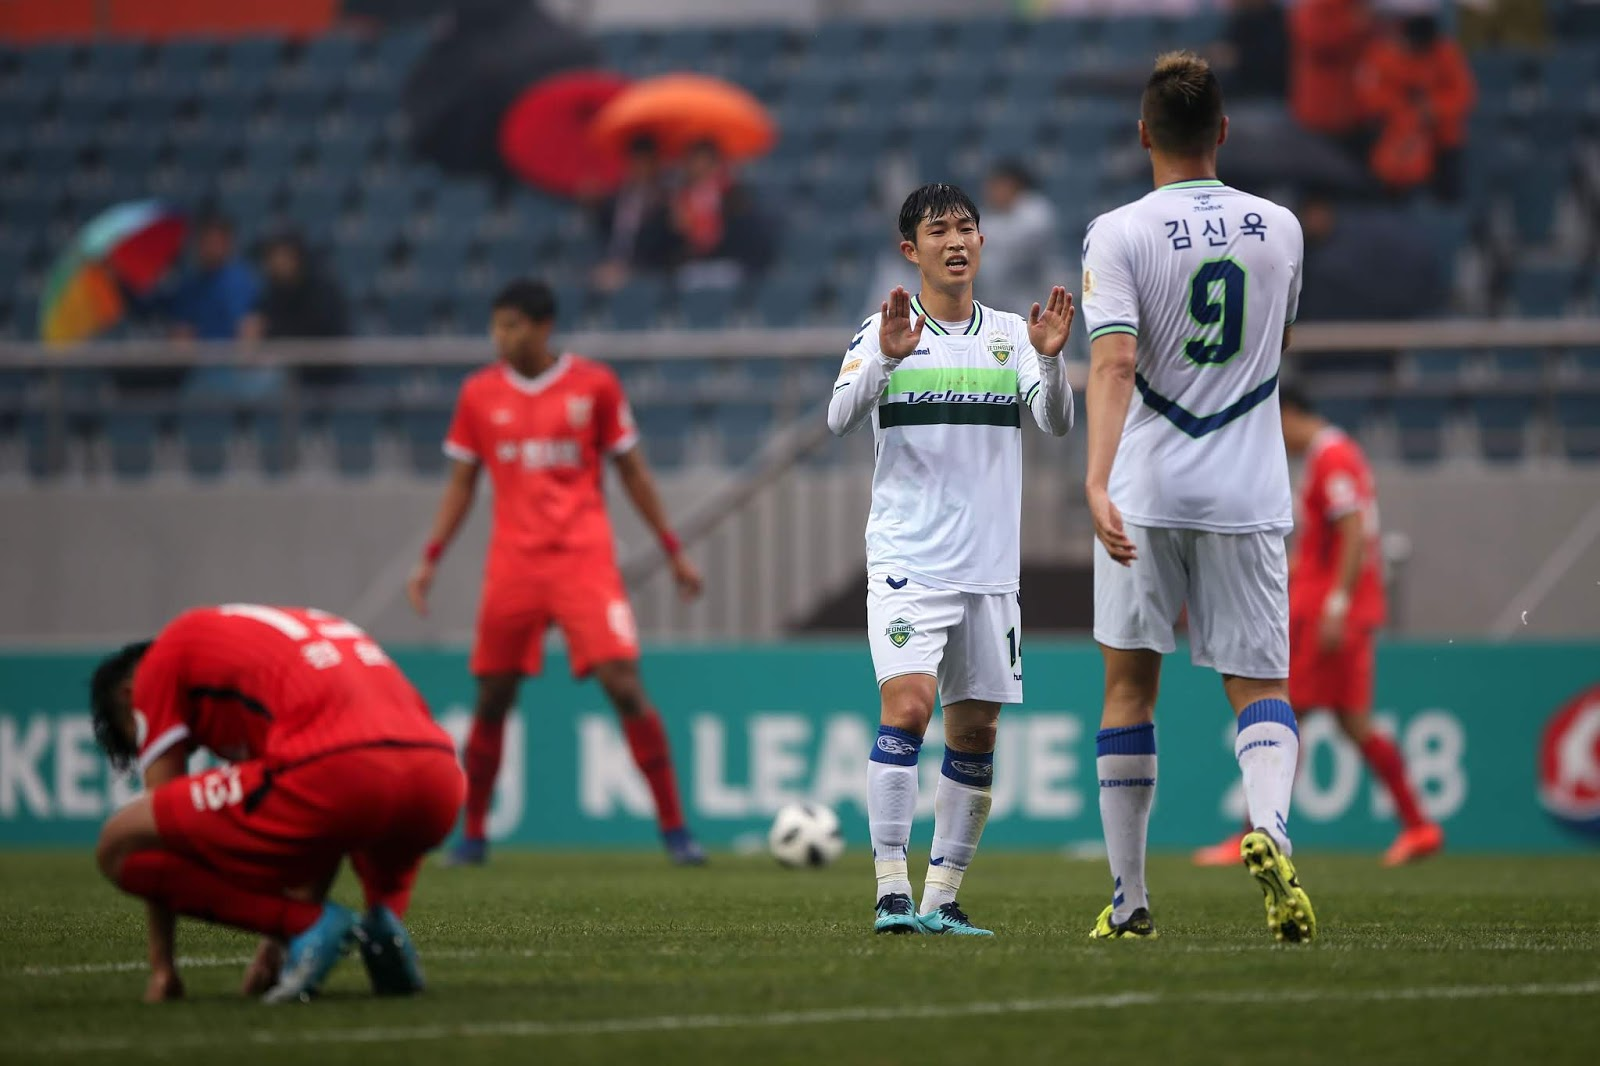 K League 1 Preview: Jeju United vs Jeonbuk Hyundai Motors